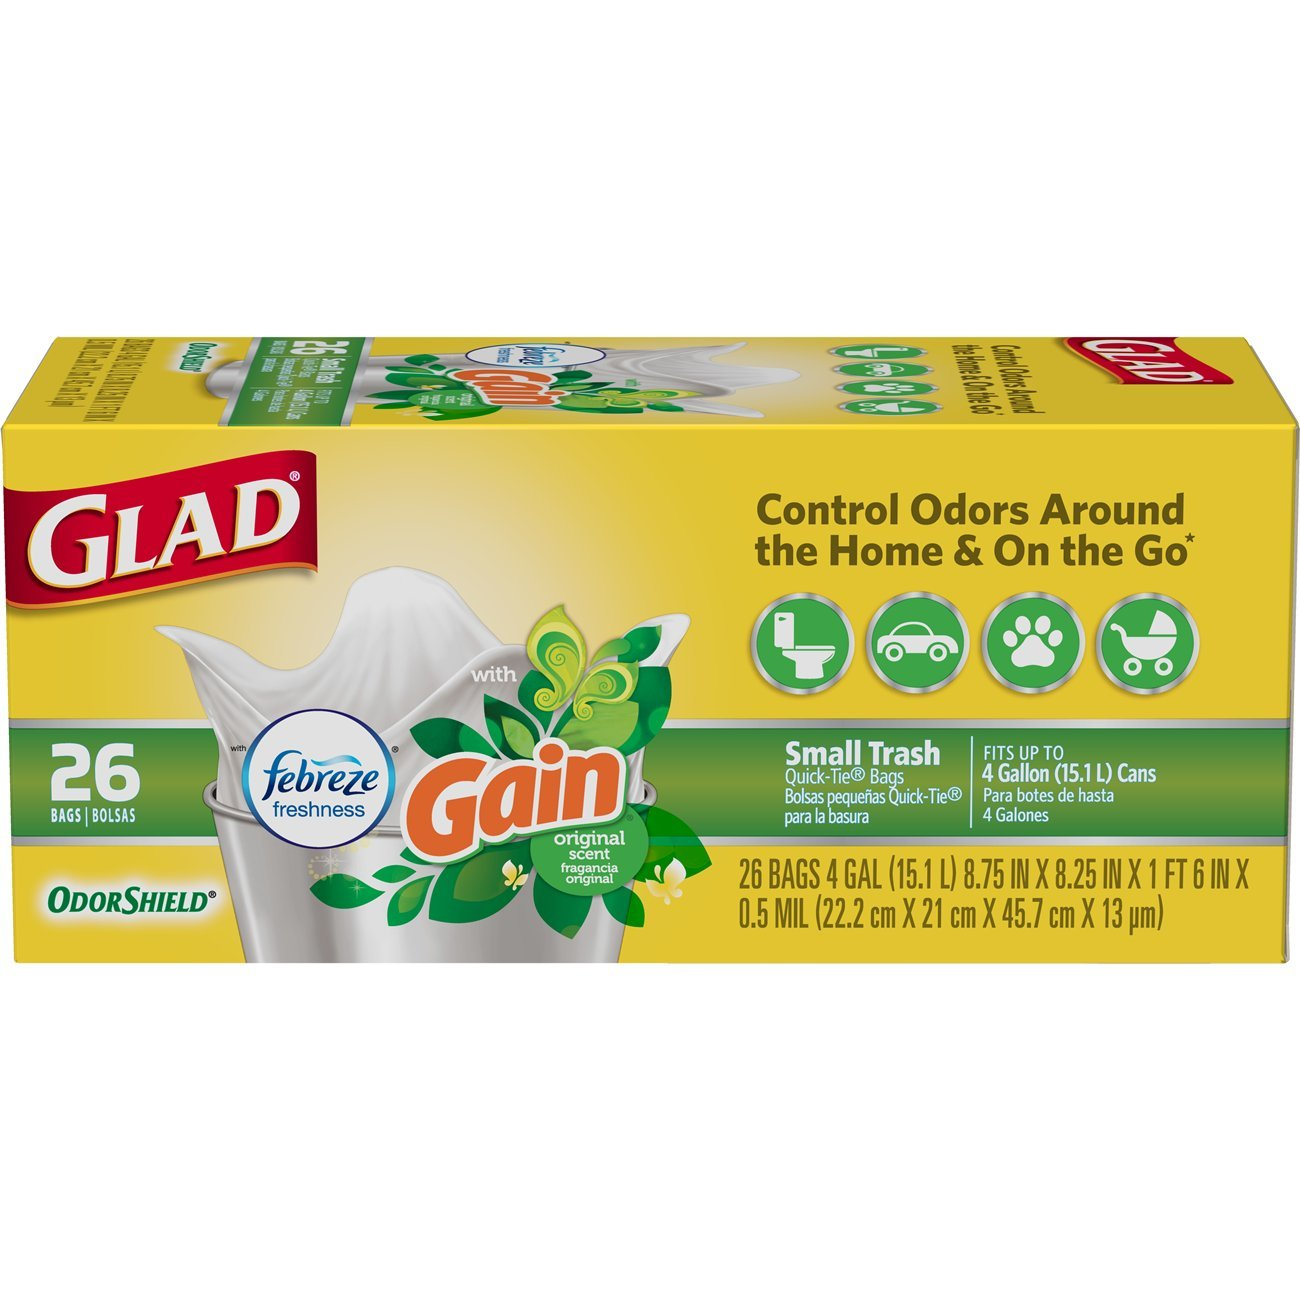 Glad OdorShield Small Trash Bags - Gain Original with Febreze Freshness - 4 Gallon - 26 Count - 6 Pack by Glad